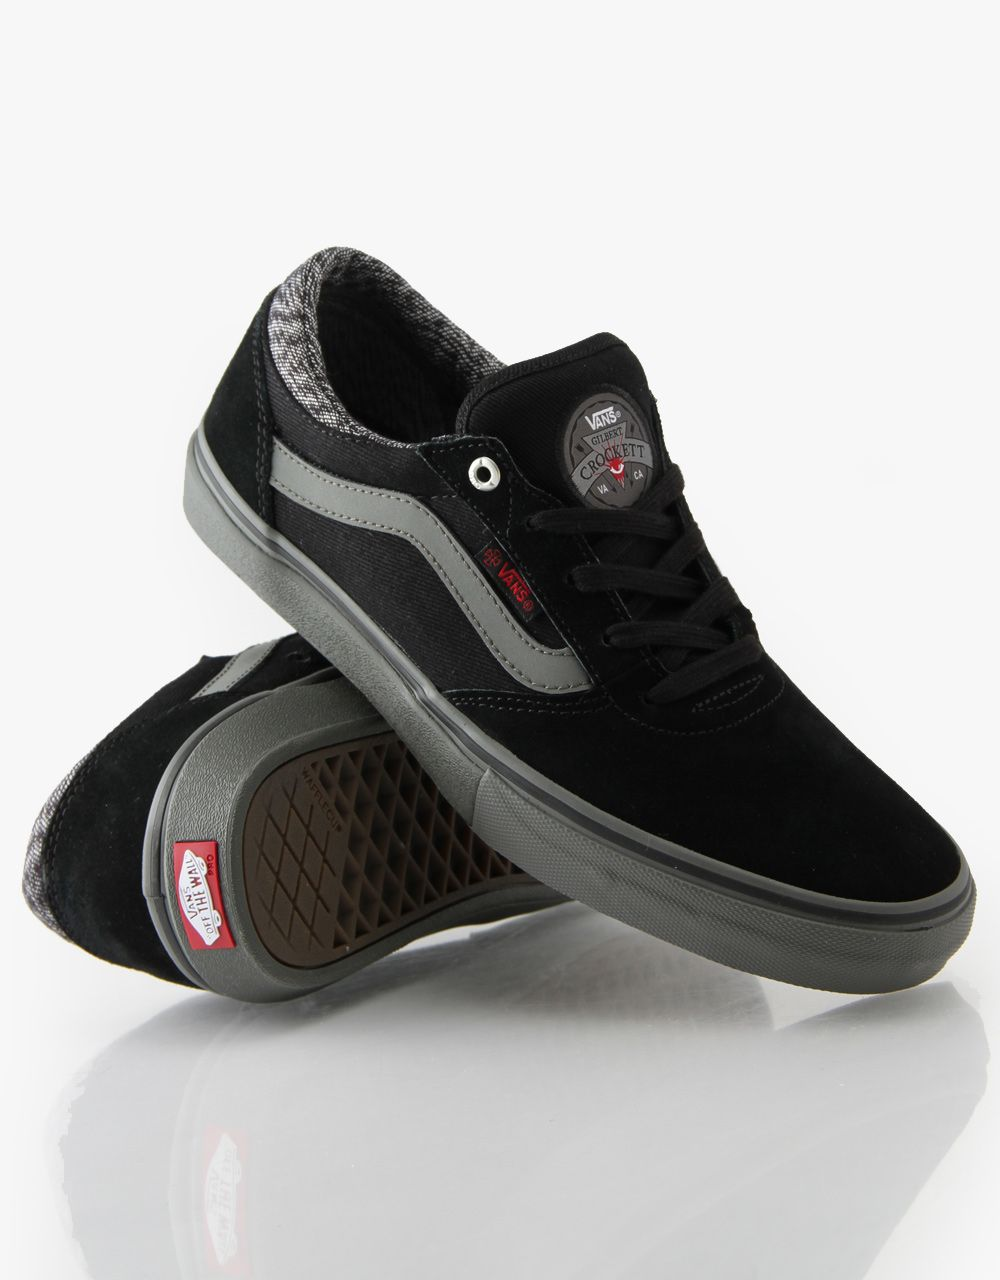 Vans Gilbert Crockett Pro x Independent Skate Shoes - Black Charcoal -  RouteOne.co.uk 5ad6014629